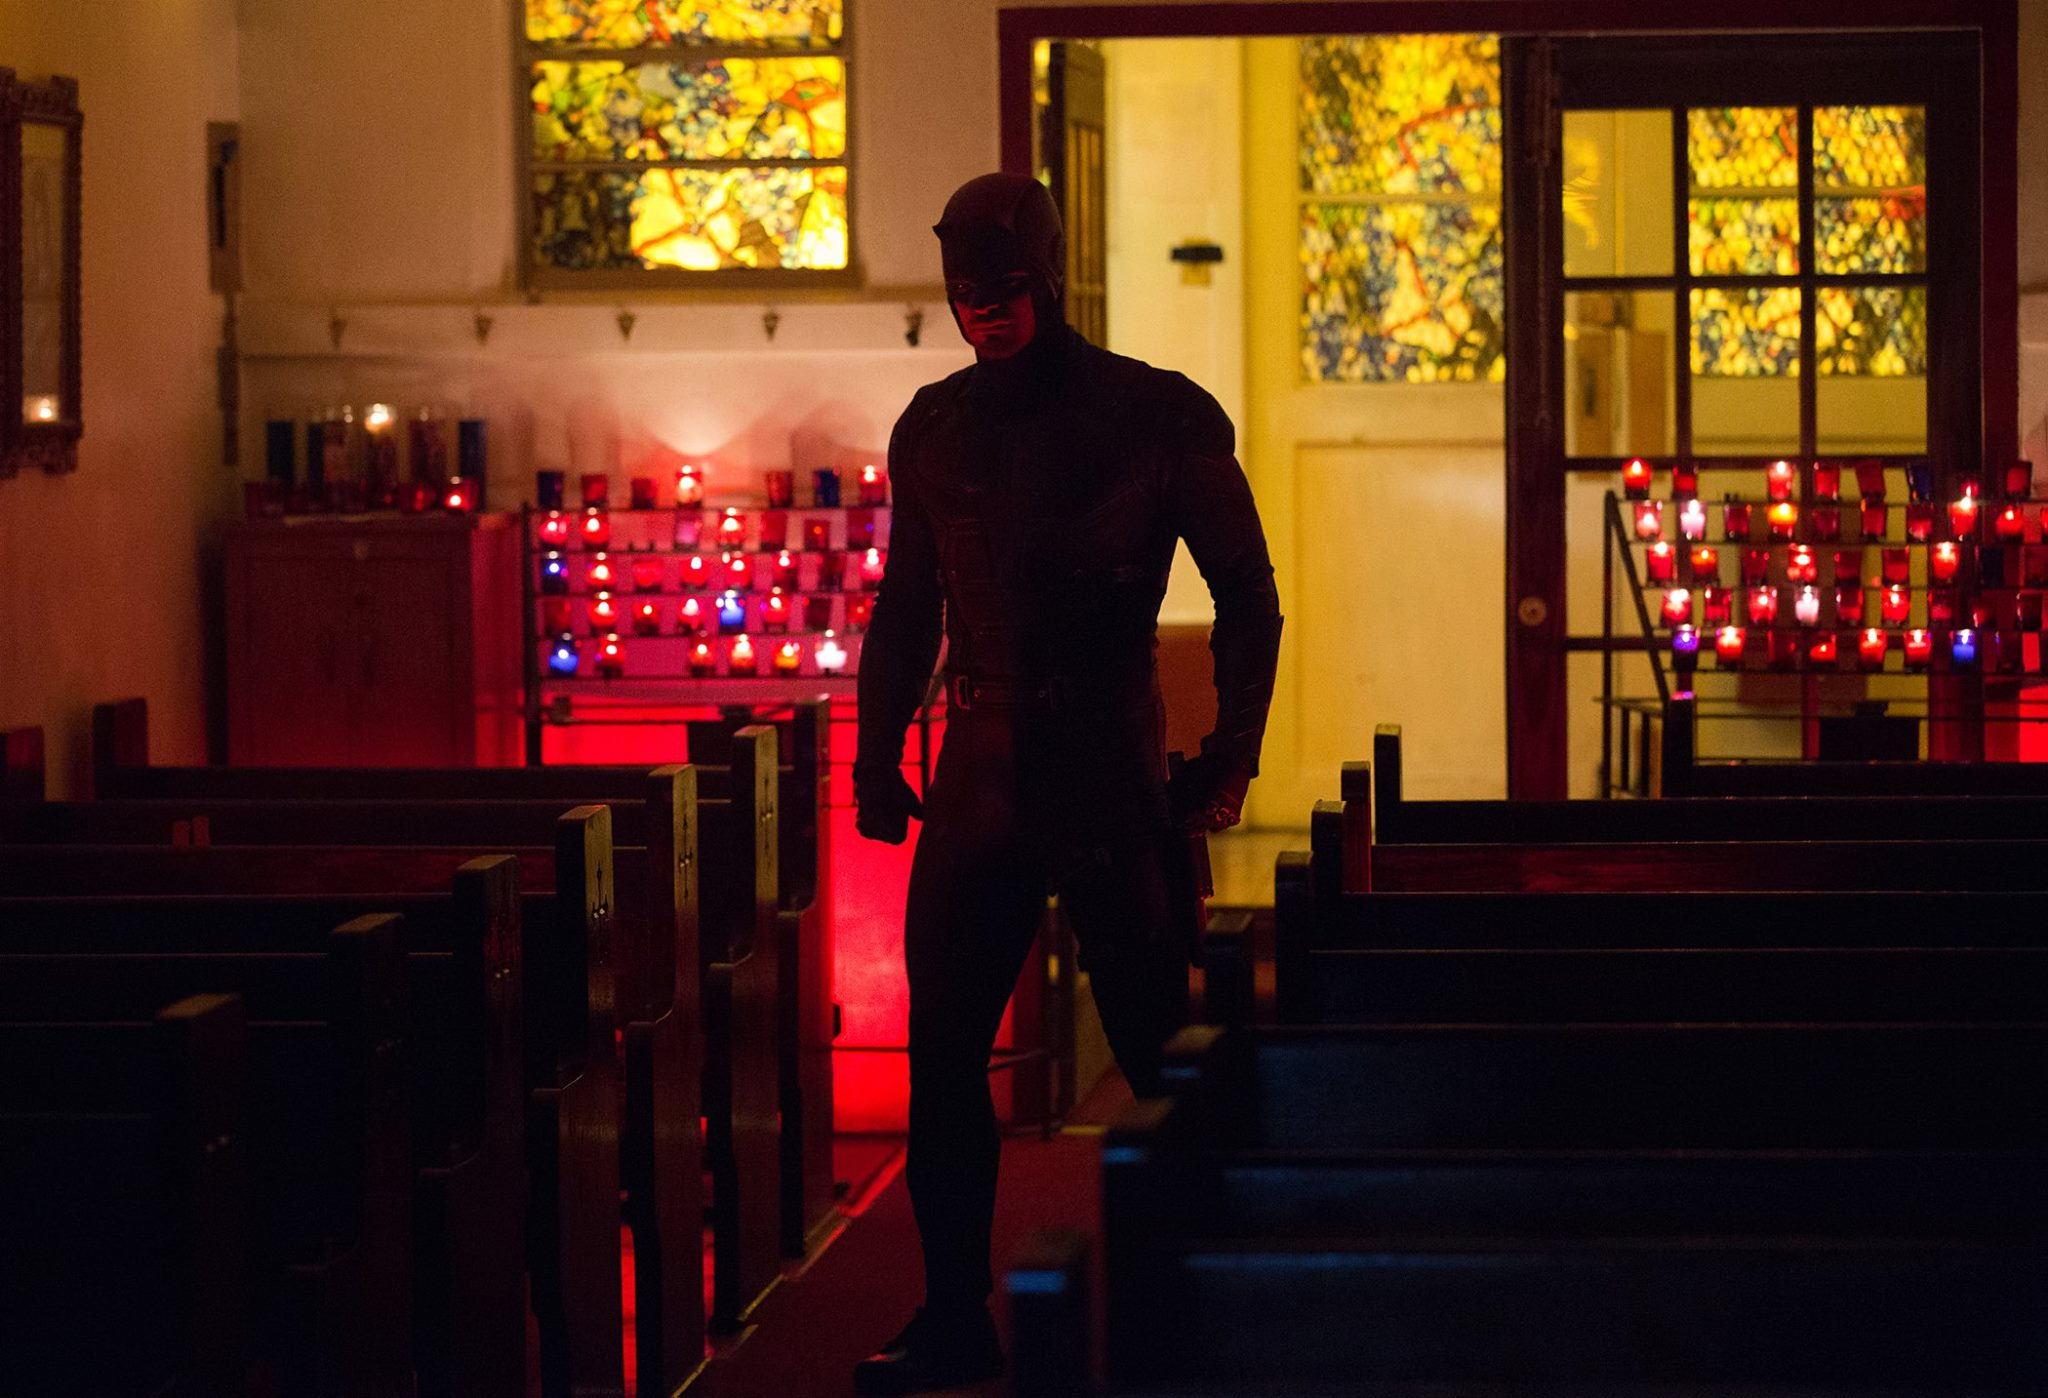 Daredevil in church